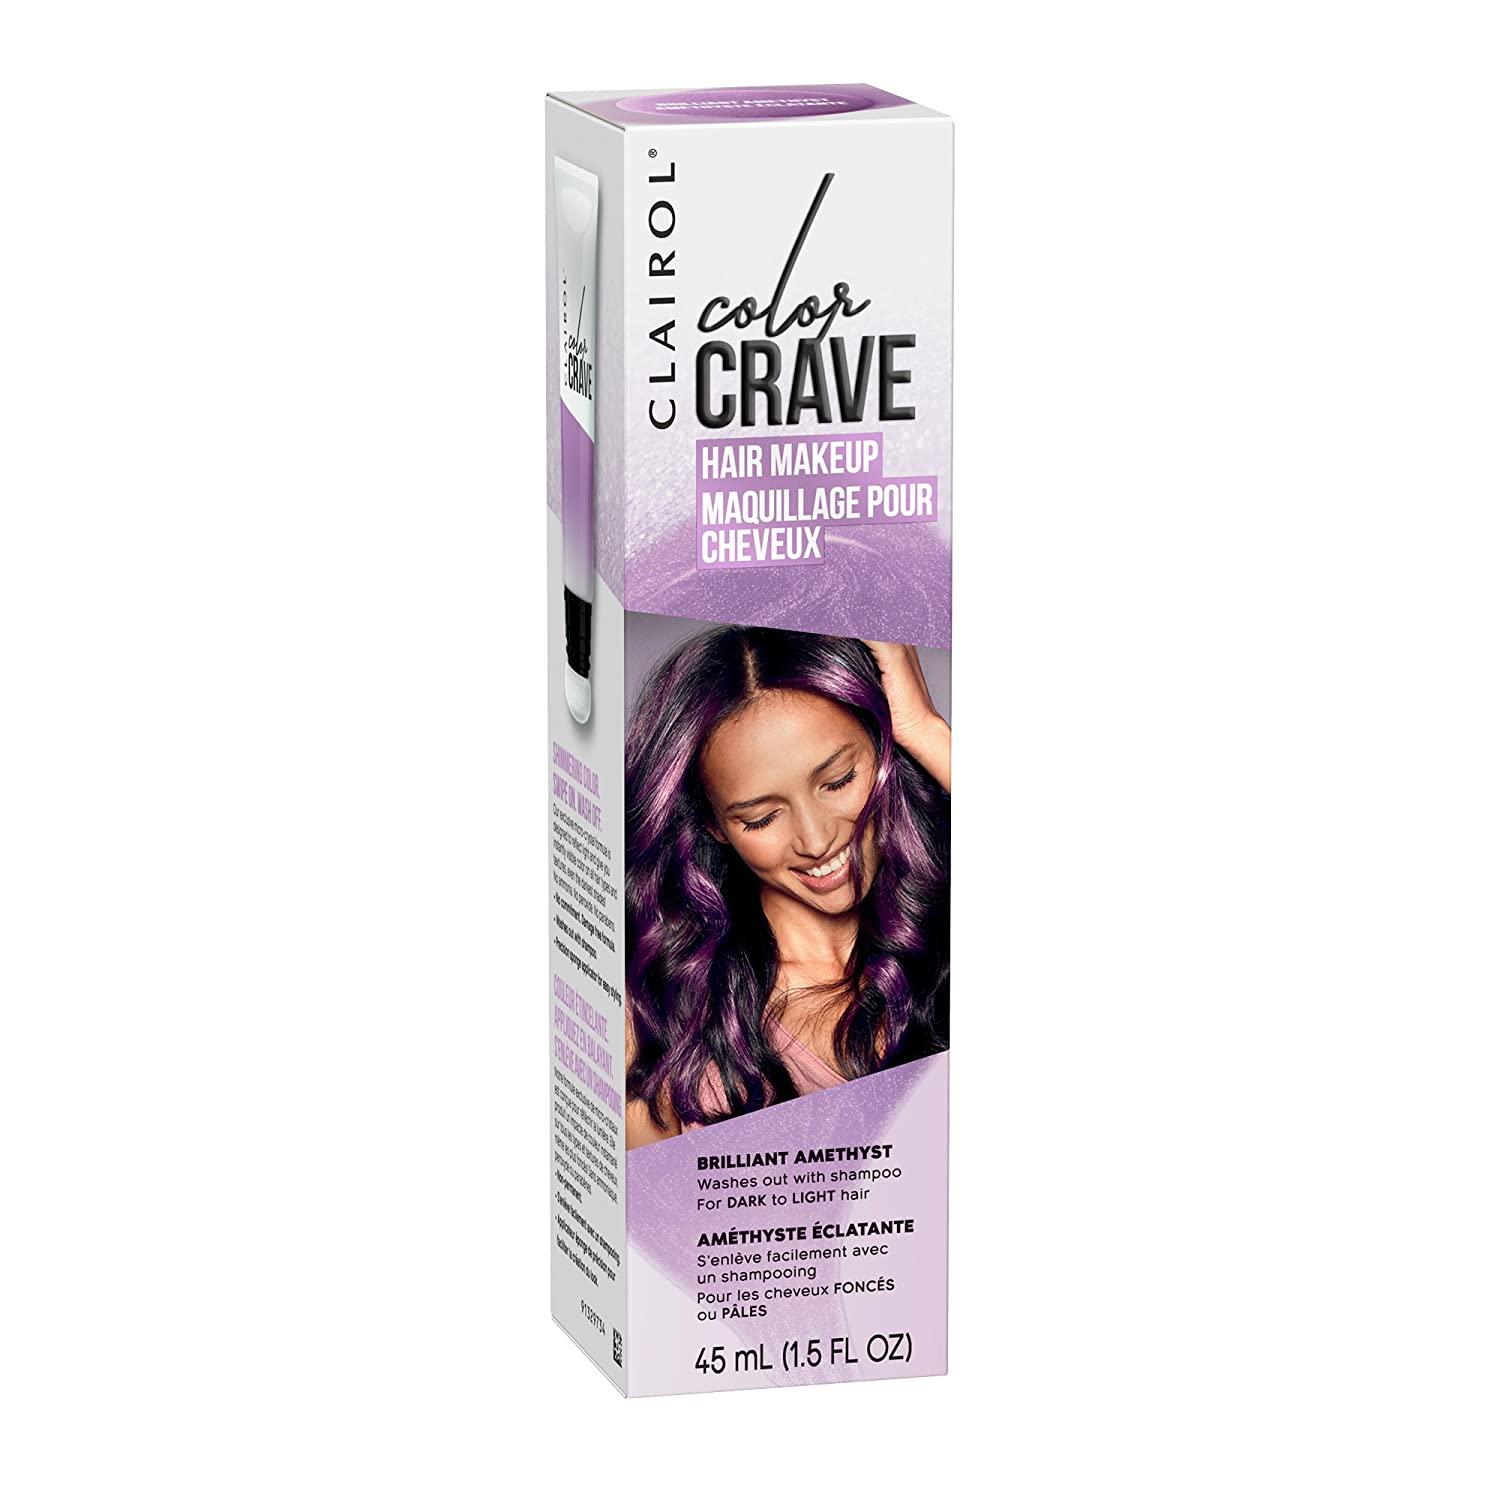 Clairol Color Crave Temporary Hair Color Makeup, Brilliant Amethyst, 1 Count